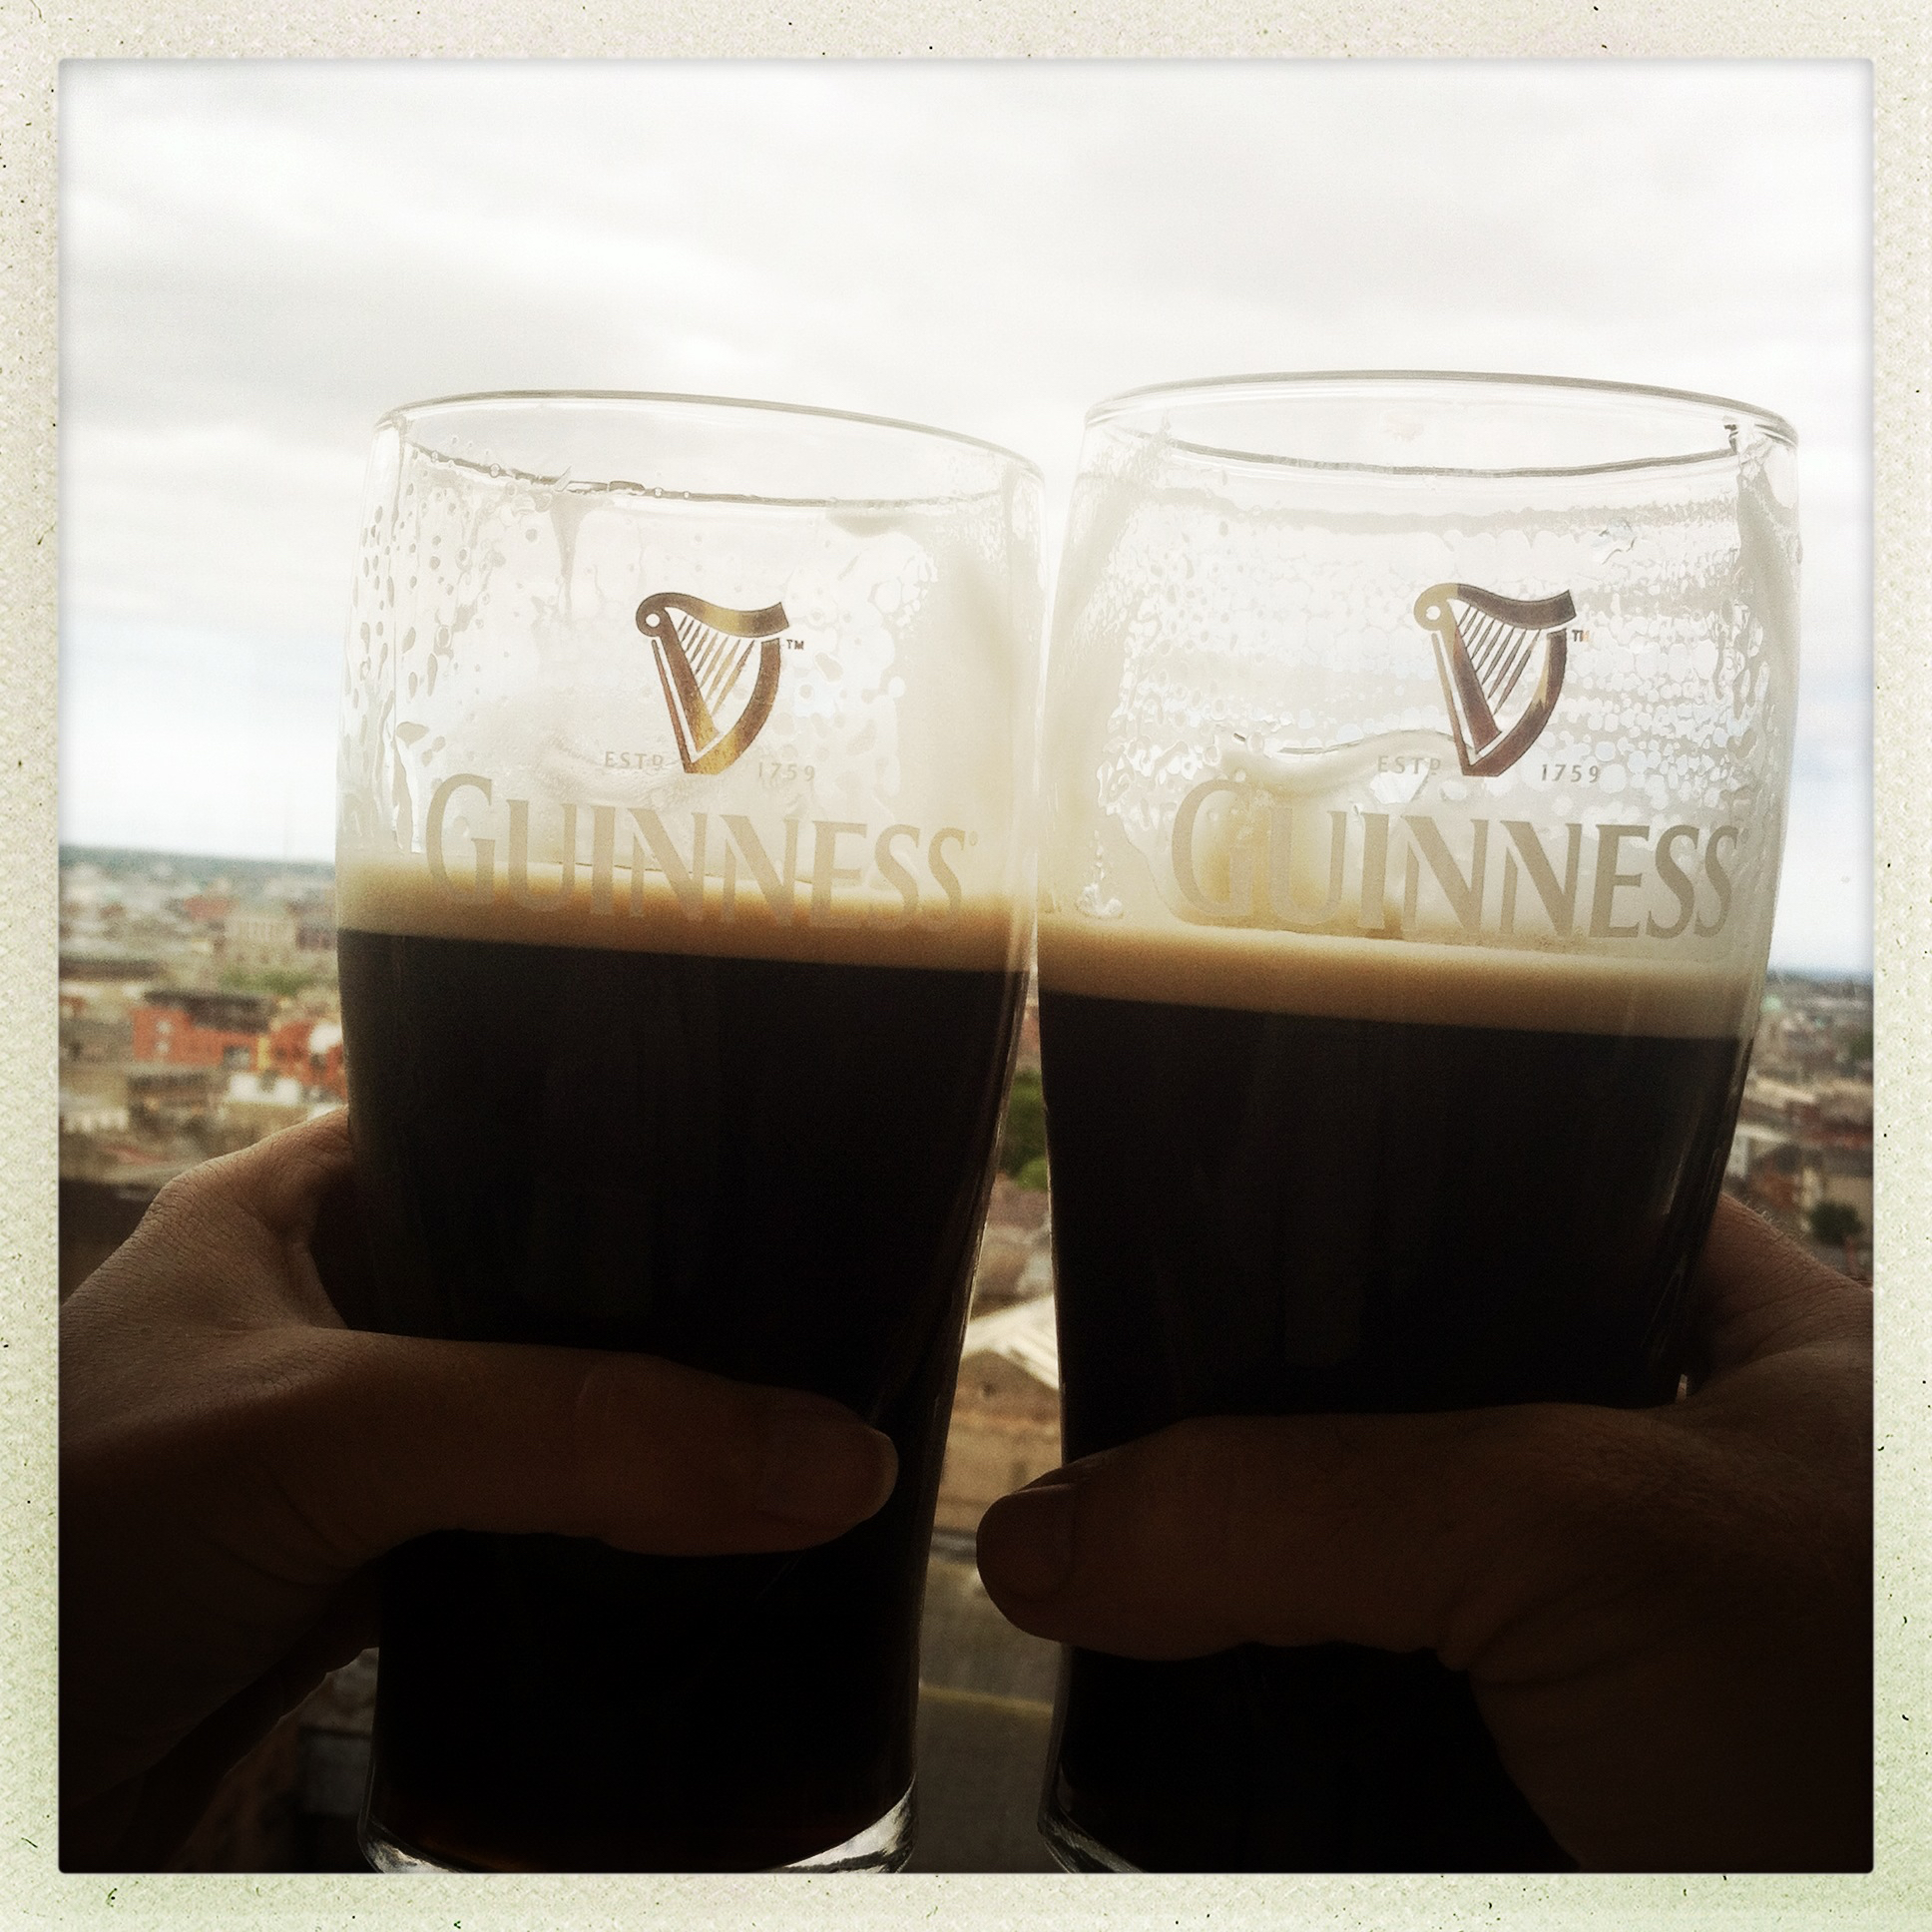 Enjoying a pint or the pure atop the Guinness Storehouse in the Gravity Bar. Photo courtesy of Emily D. Lorusso.